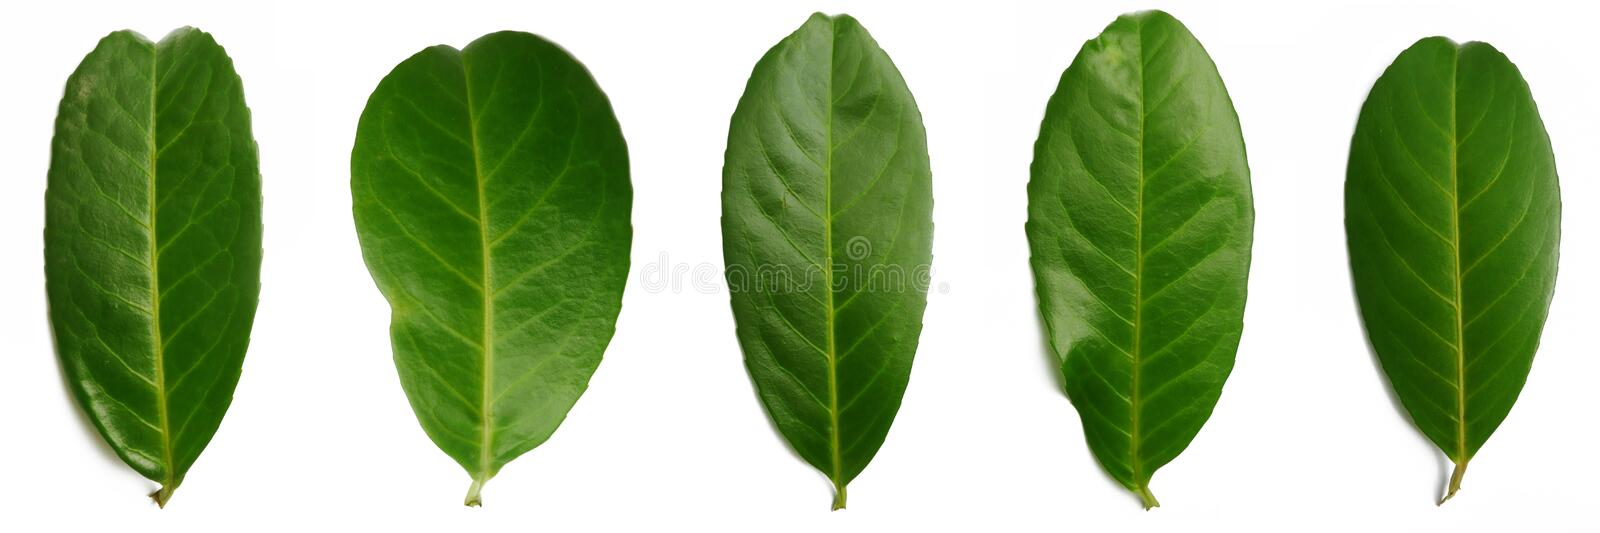 5 bay leafs royalty free stock photography